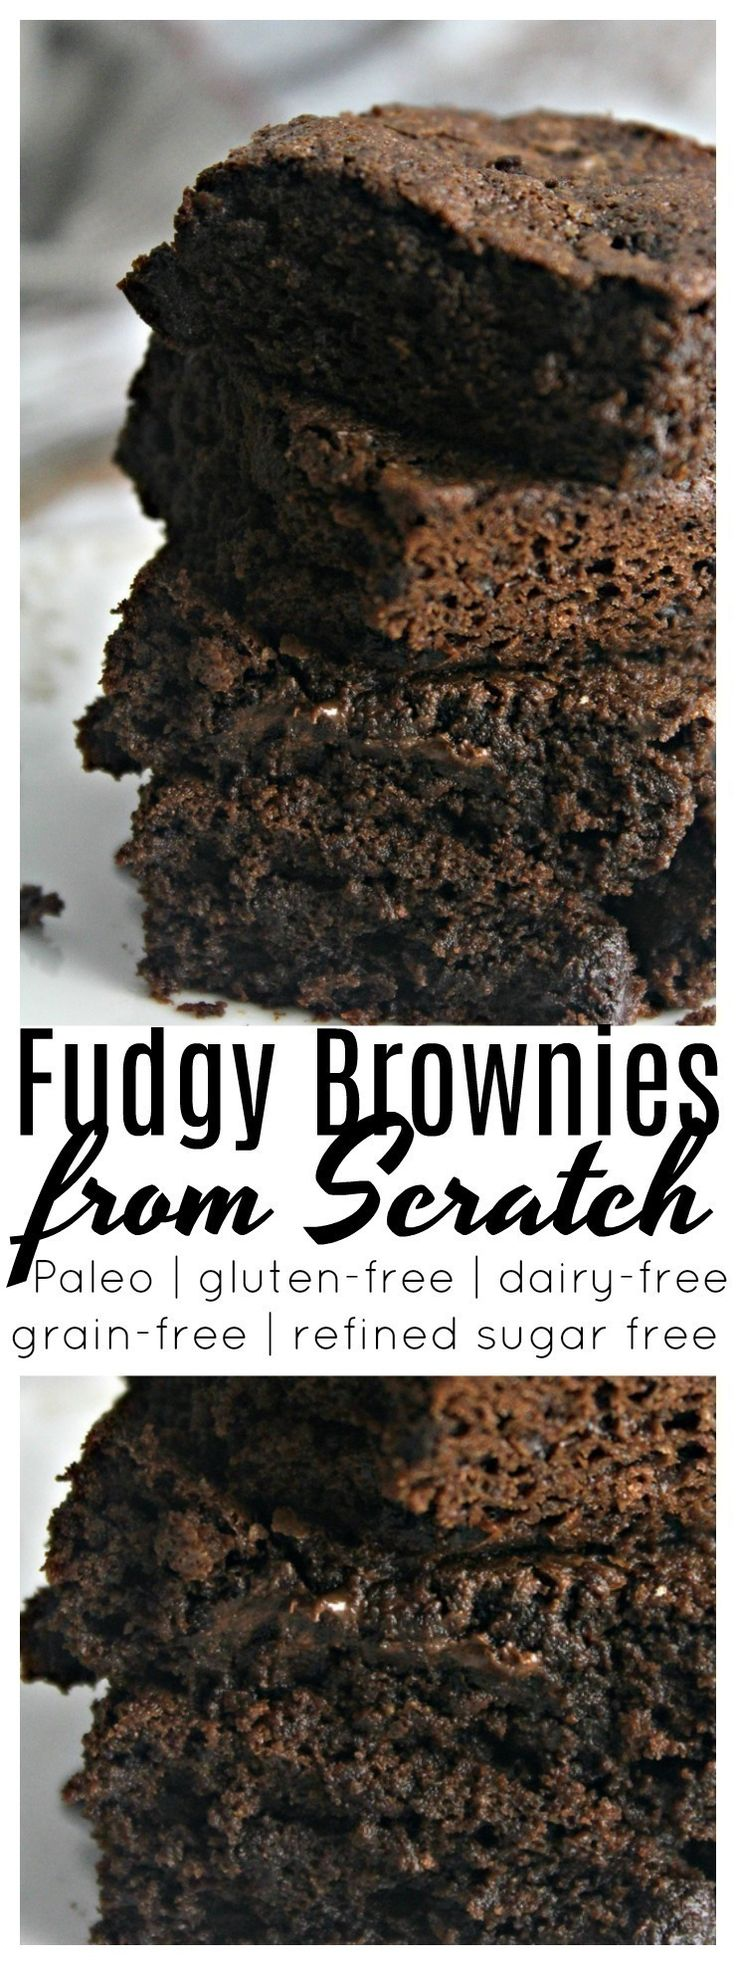 The BEST rich, fudgy and decadent brownie you will ever have! These brownies are Paleo, gluten free, dairy free, and refined sugar free.